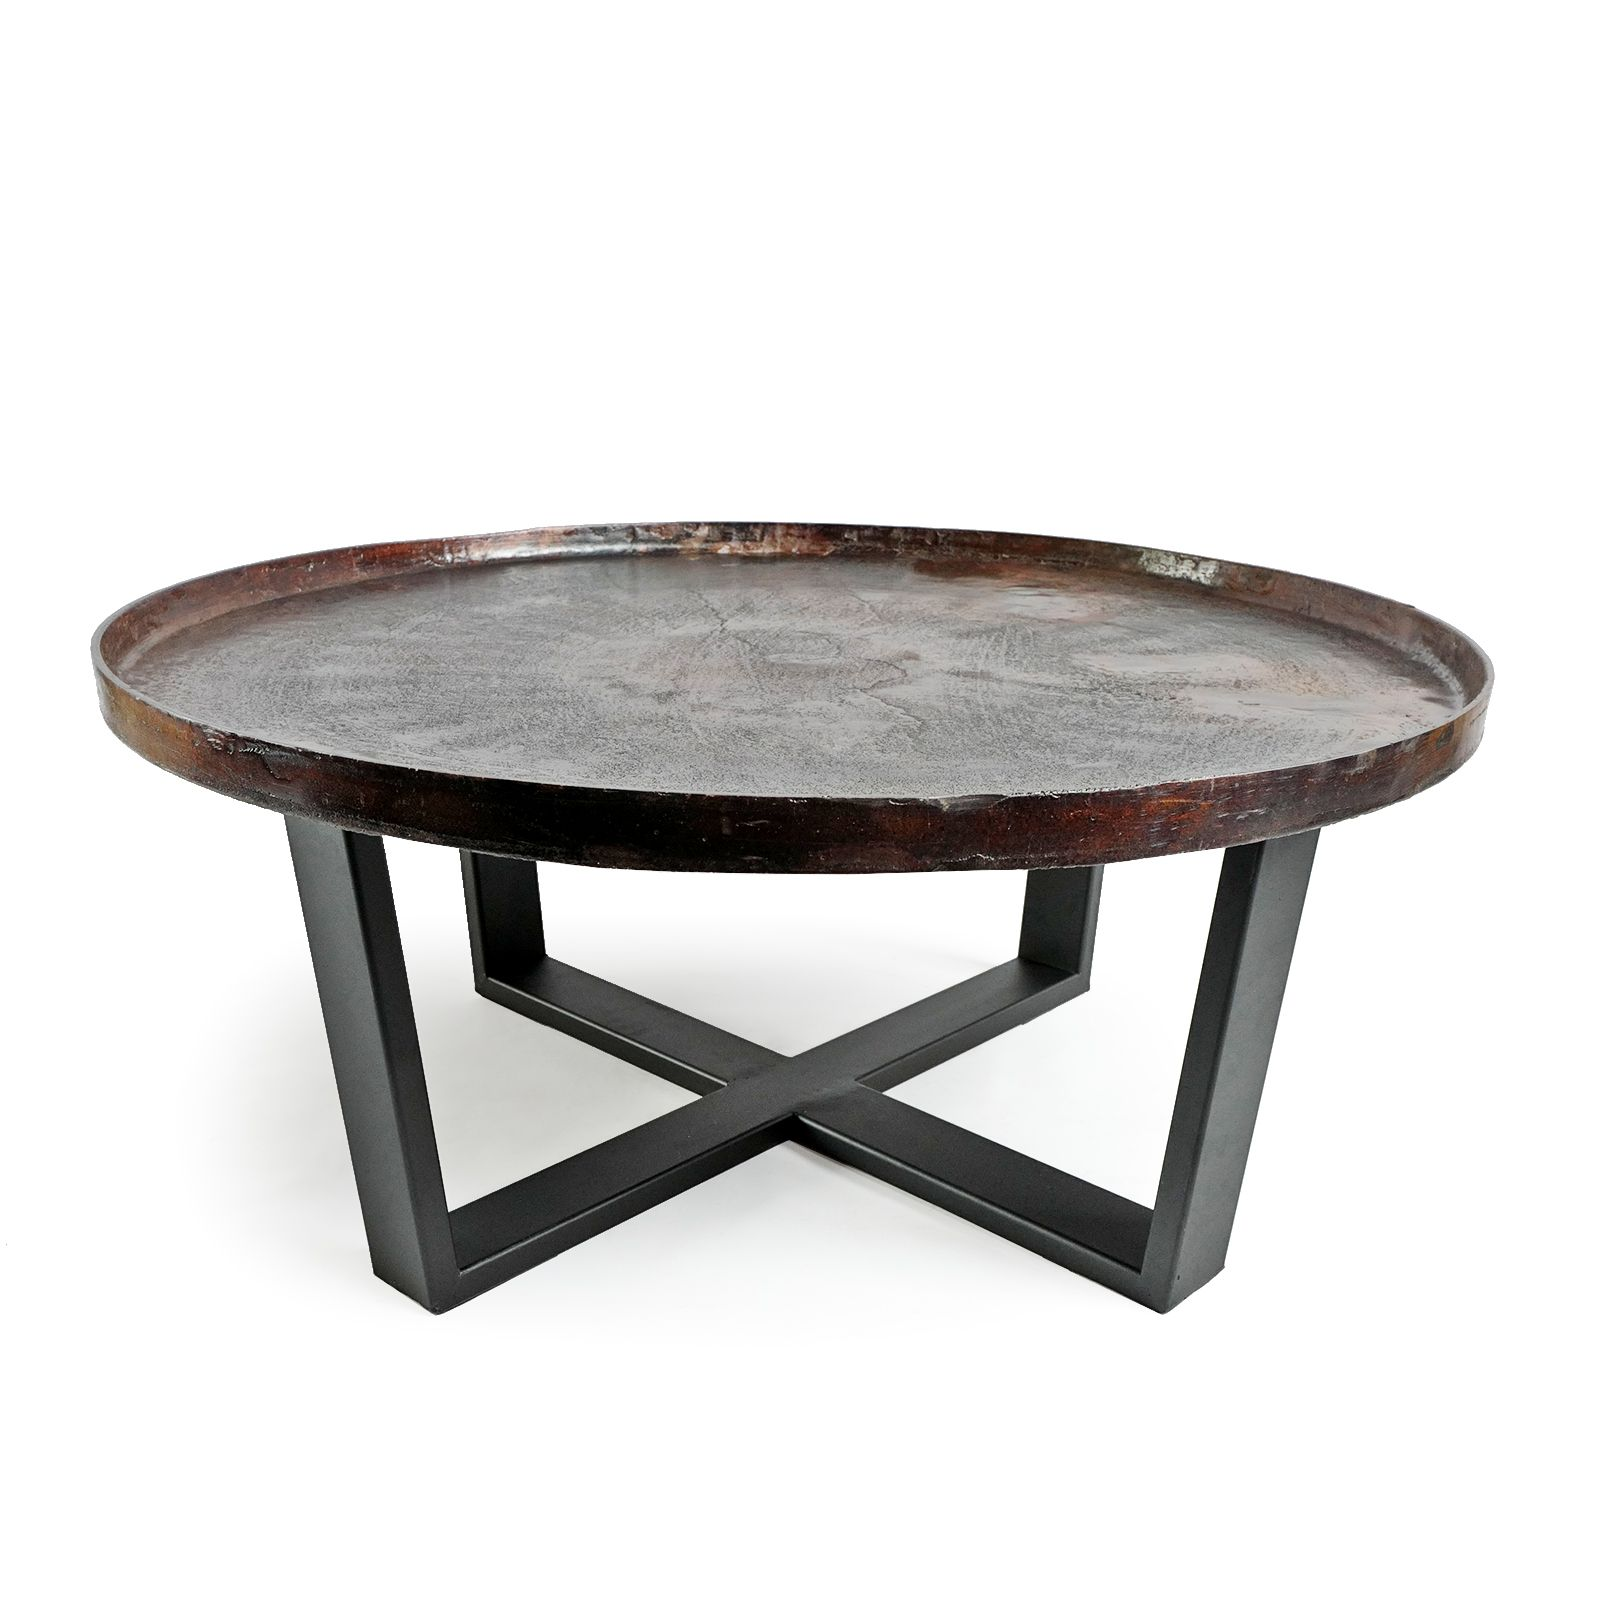 Modern Round Copper Finished Solid Aluminum Tray Top With Black Matte Iron Base Great Texture A Iron Coffee Table Copper Coffee Table Round Metal Coffee Table [ 1600 x 1600 Pixel ]